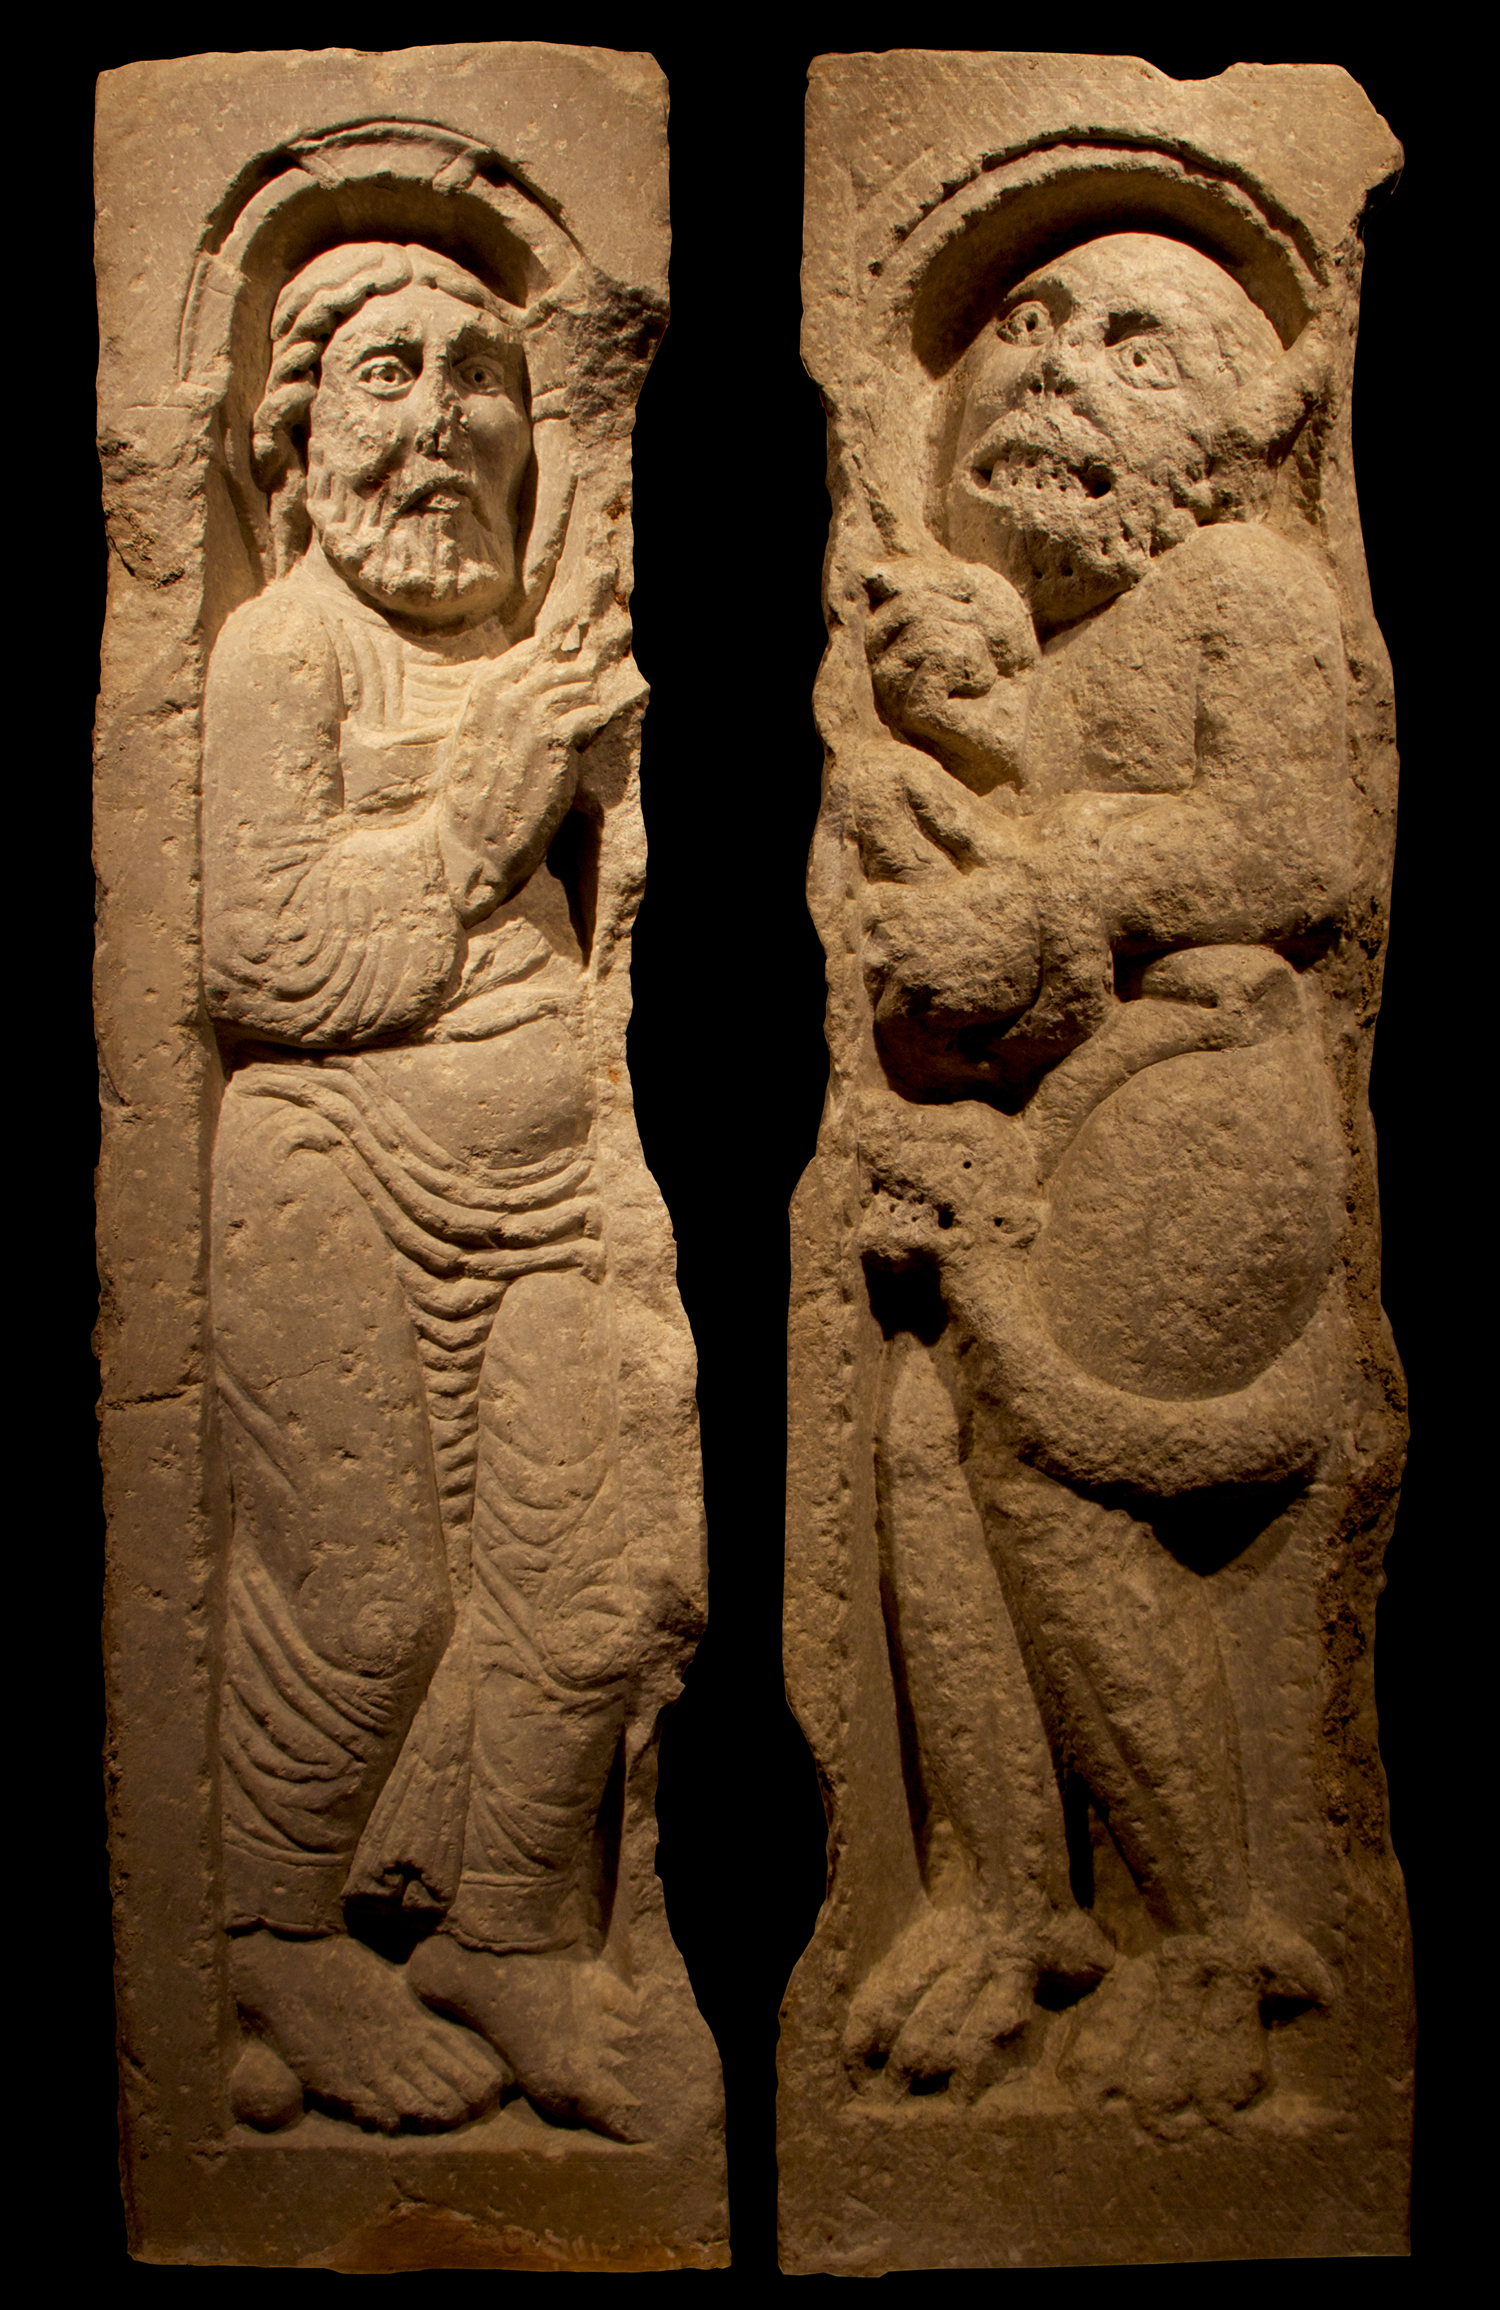 Two twelfth-century marble reliefs depicting the Temptation of Christ.